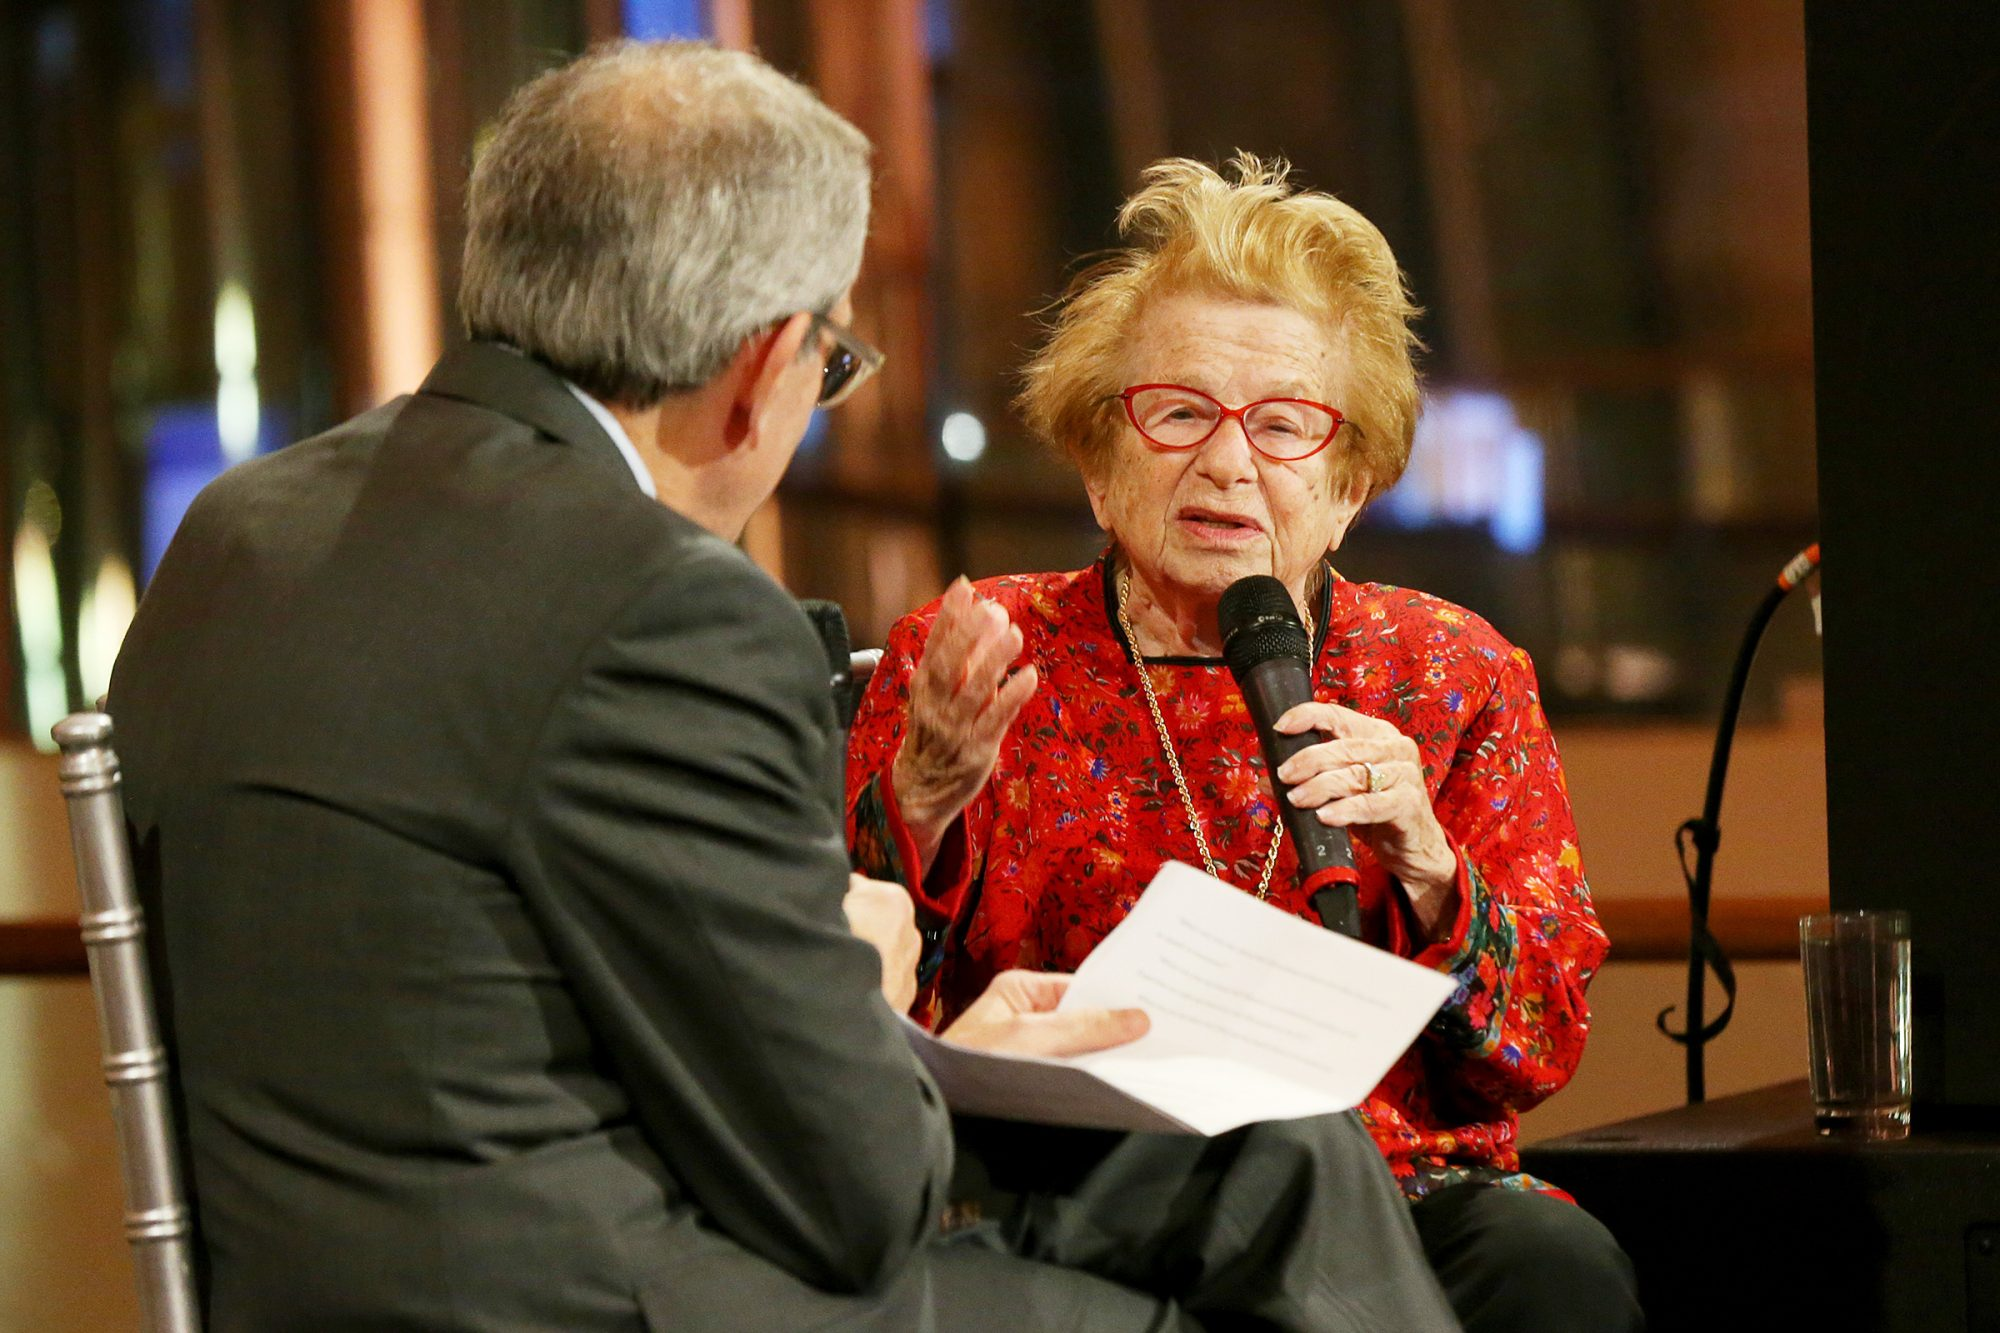 David Marwell interviews Dr. Ruth on stage during the YM&YWHA Of Washington Heights And Inwood Gala Honoring Dr. Ruth at Gustavino's on December 03, 2019 in New York